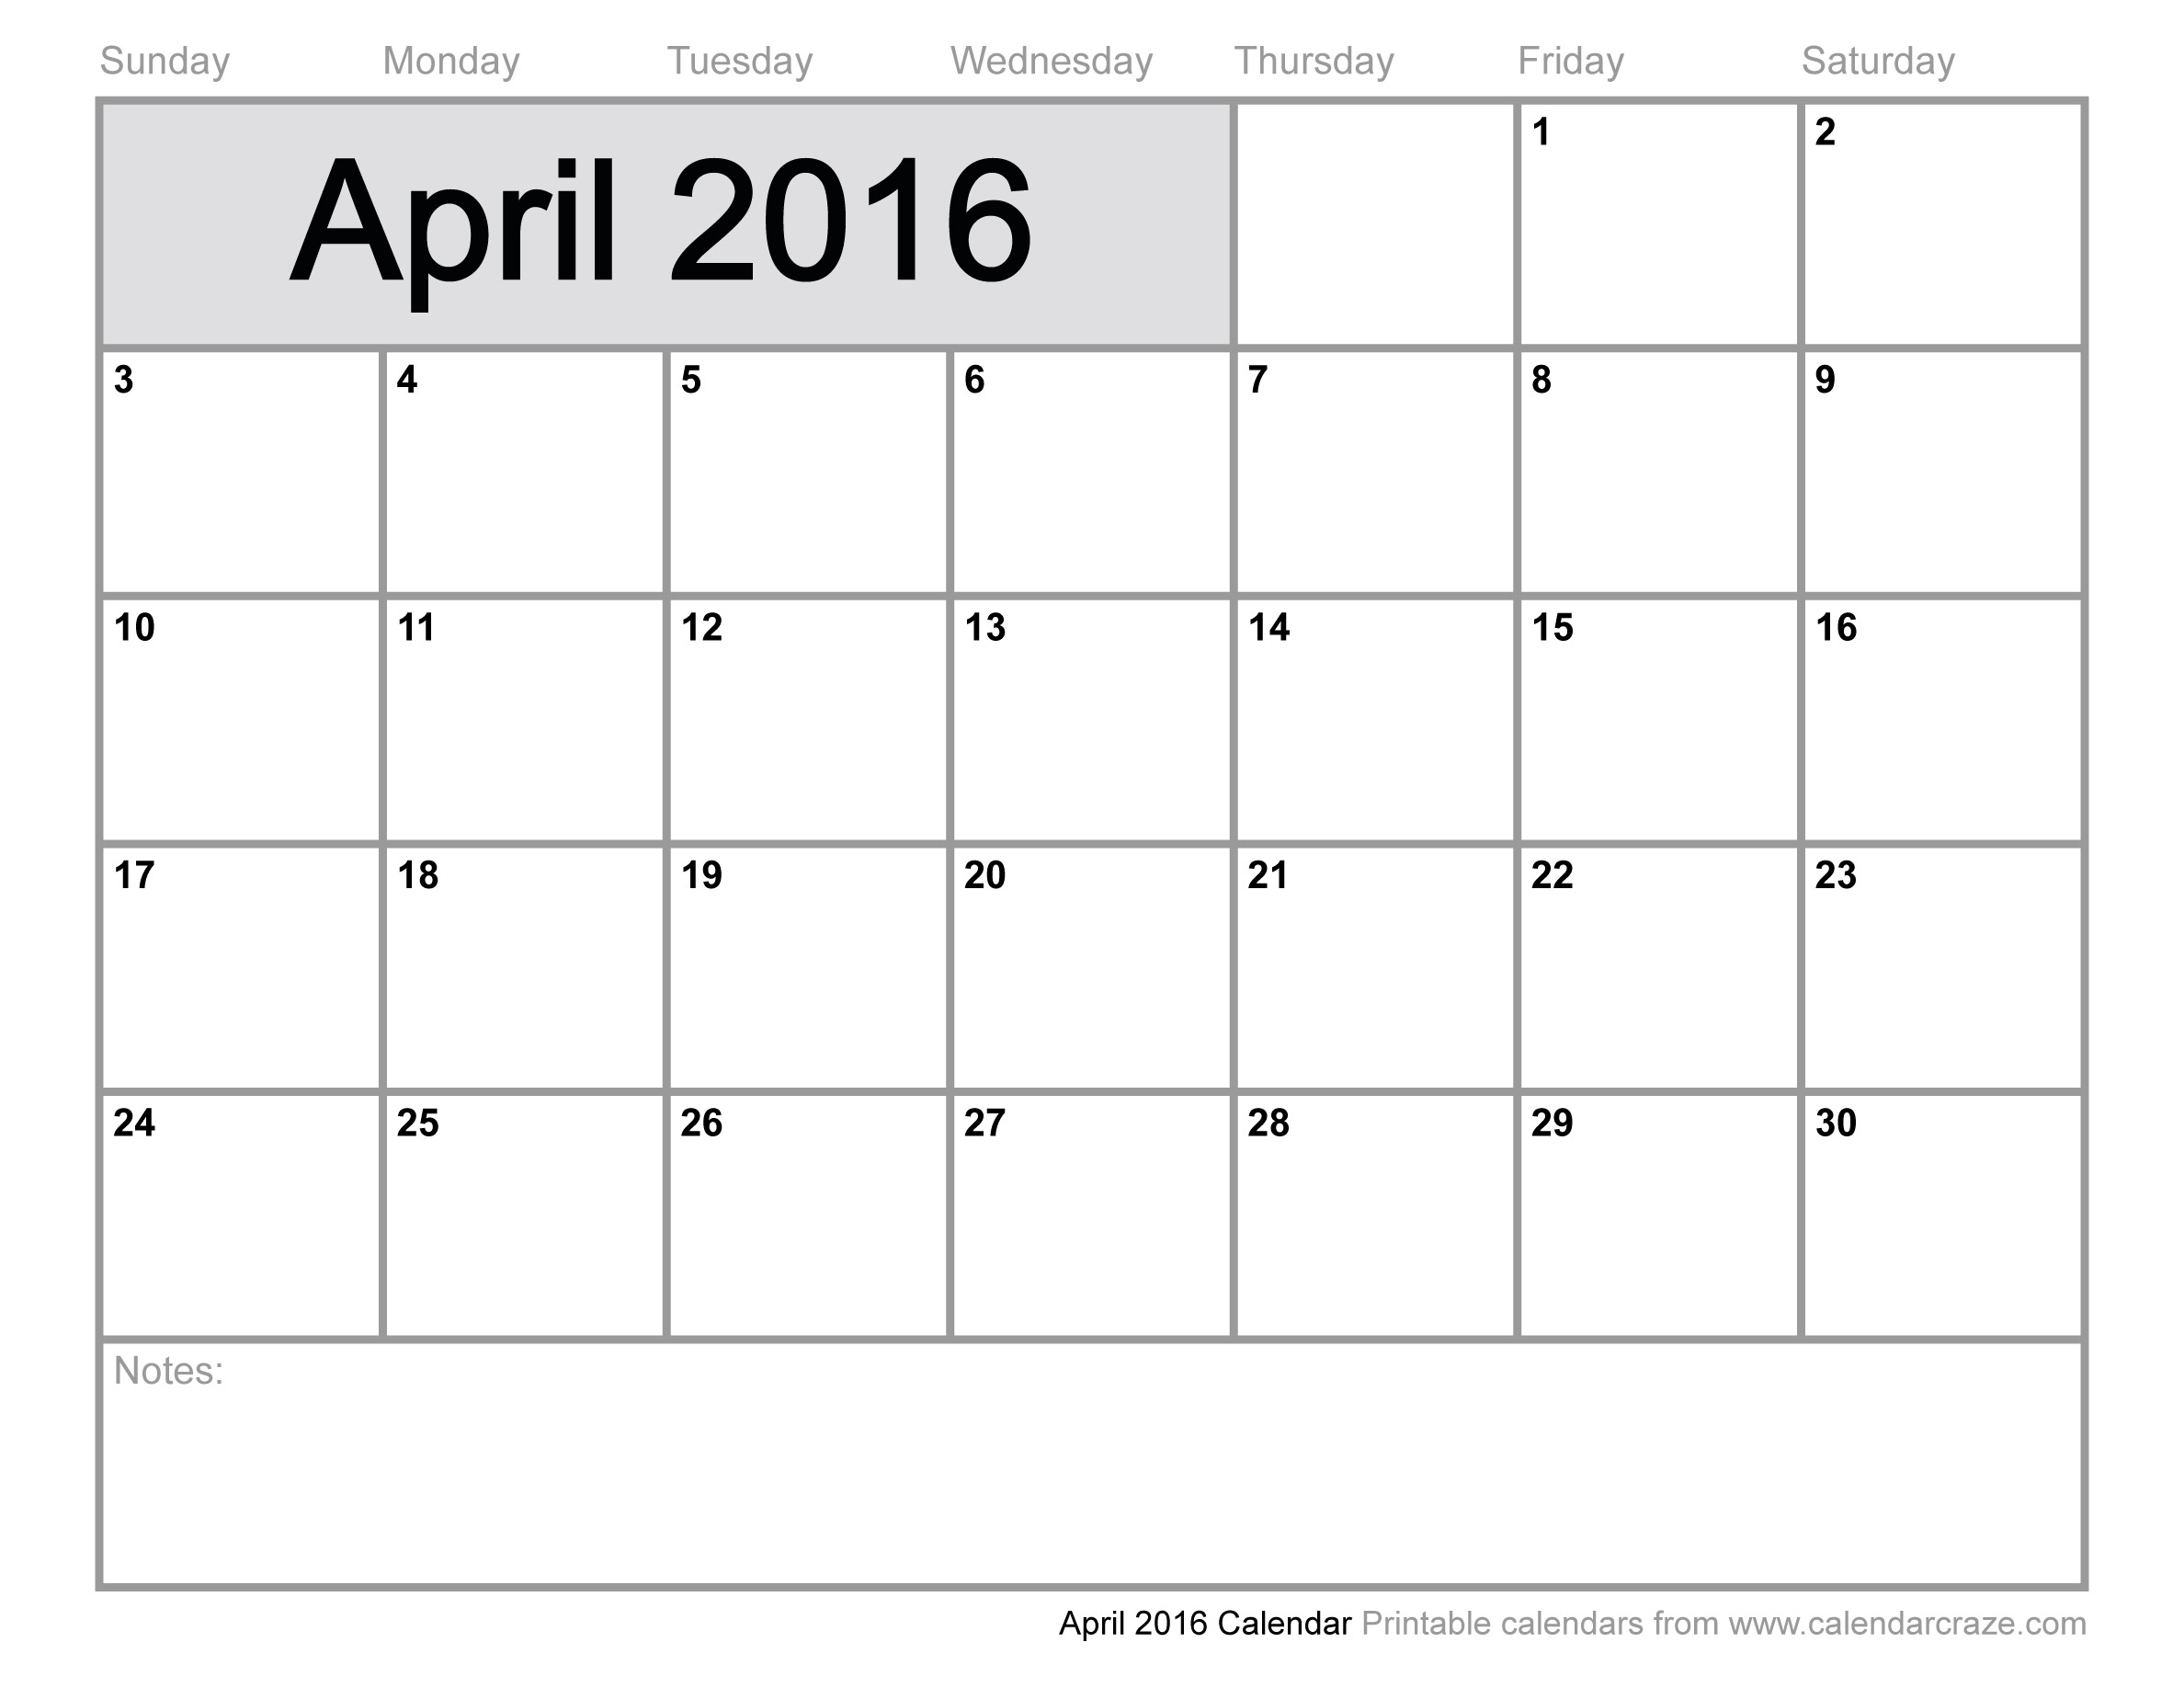 Th clipartfest . April 2016 calendar clipart